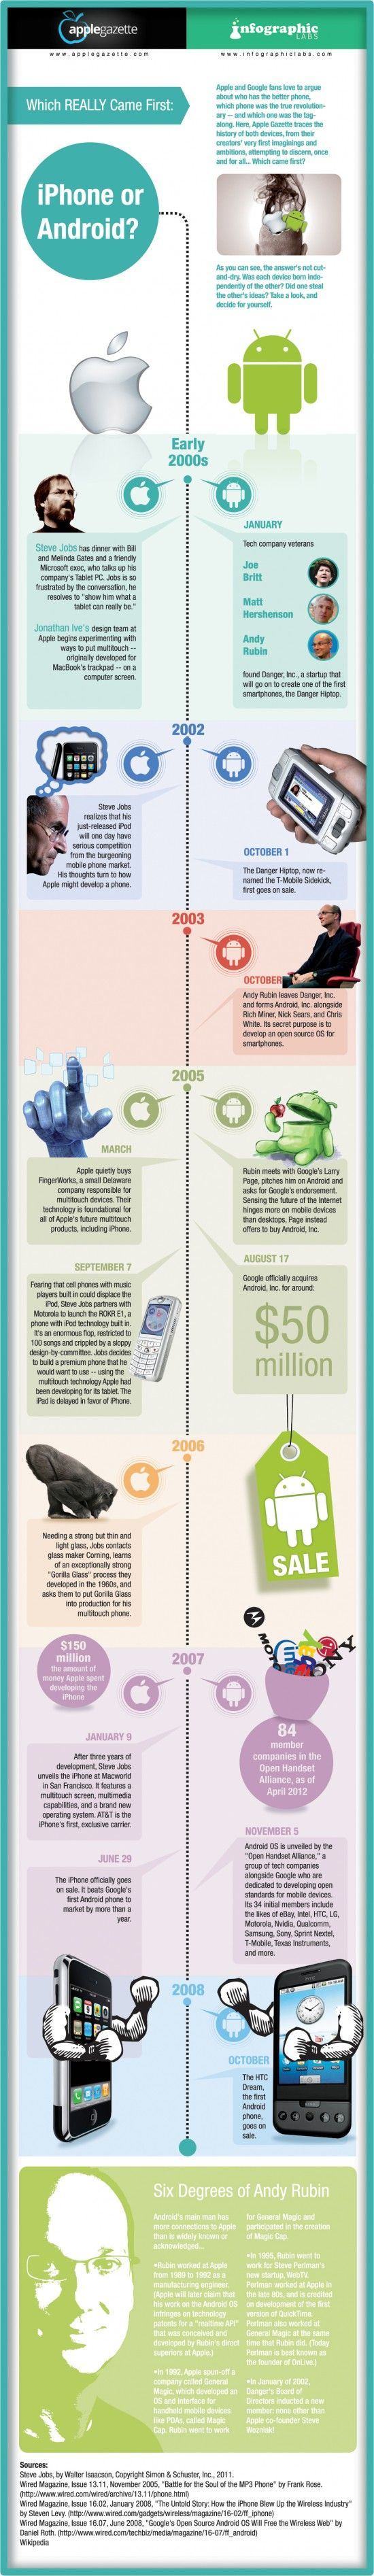 Everyone believes that the iPhone came before the first Android phone, but is that really true? Below the cool infographic tells the right answer for this question.